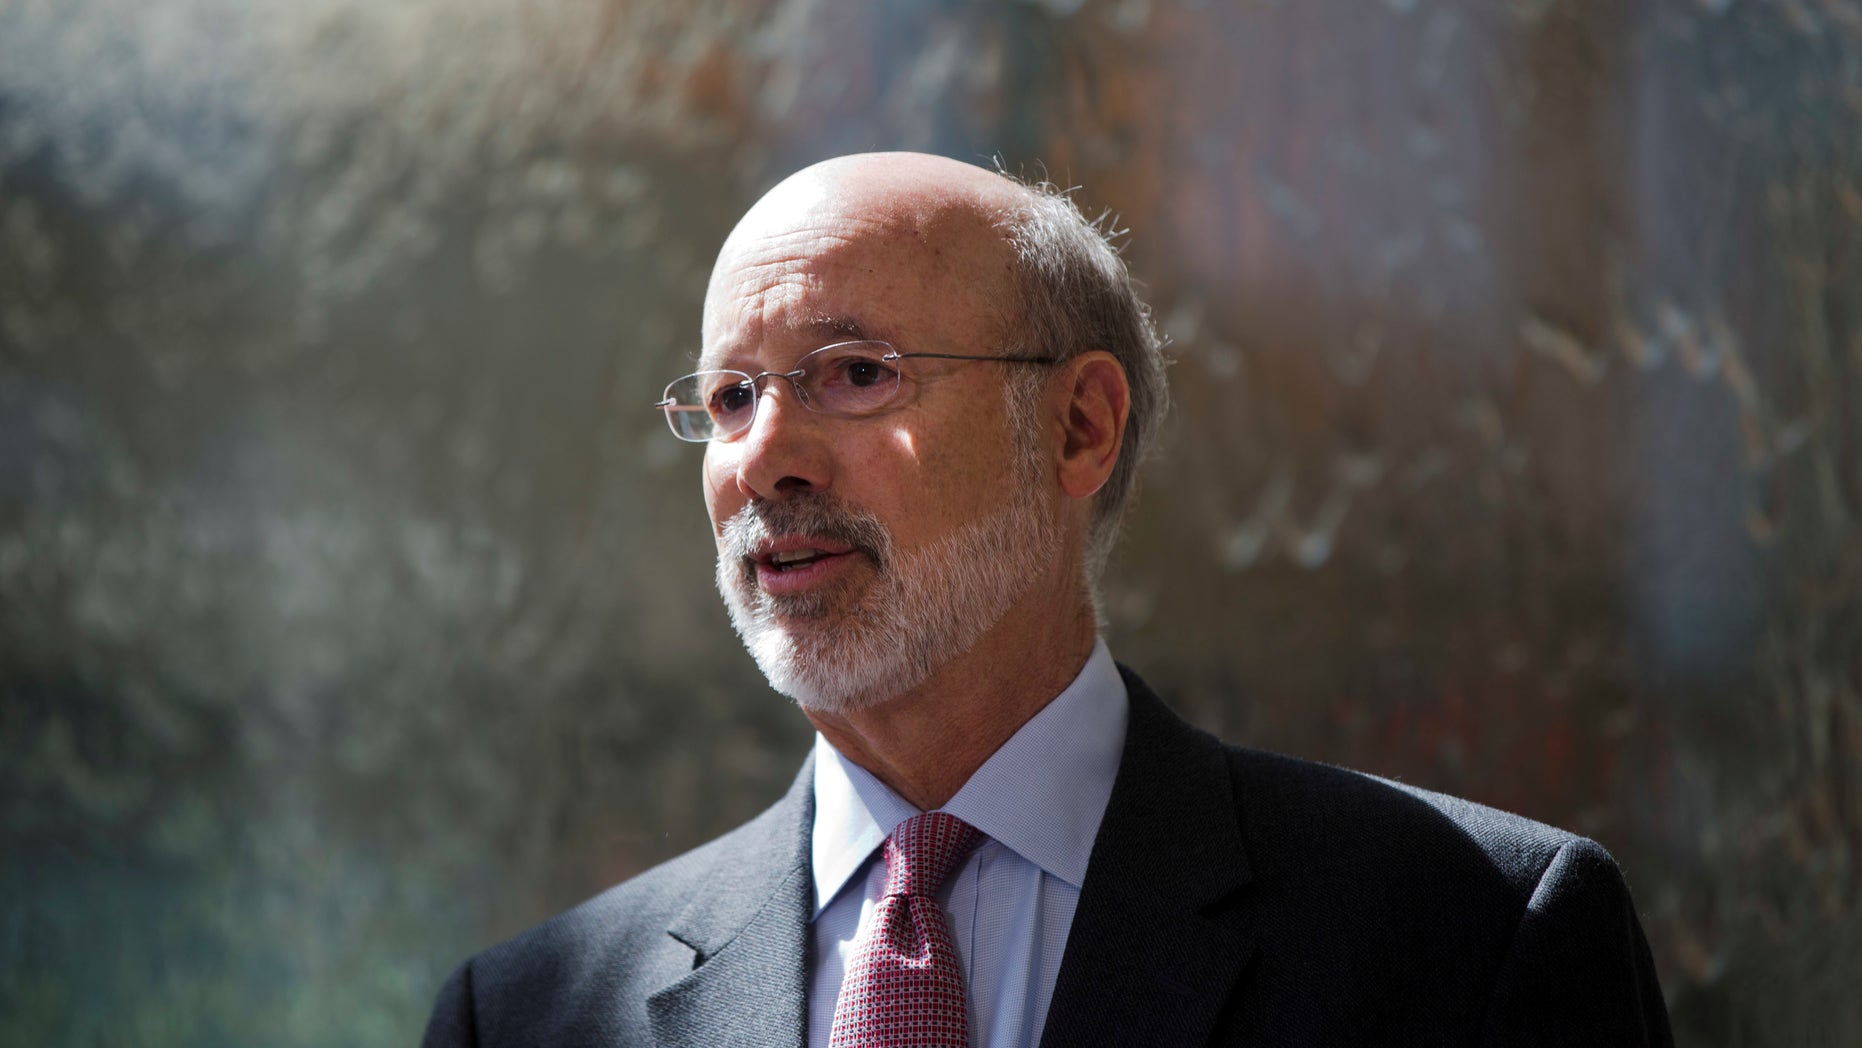 Pennsylvania Gov. Tom Wolf says that he intends to sign off on final approval for the bill, which will help to lower the state's unfunded pension liability.